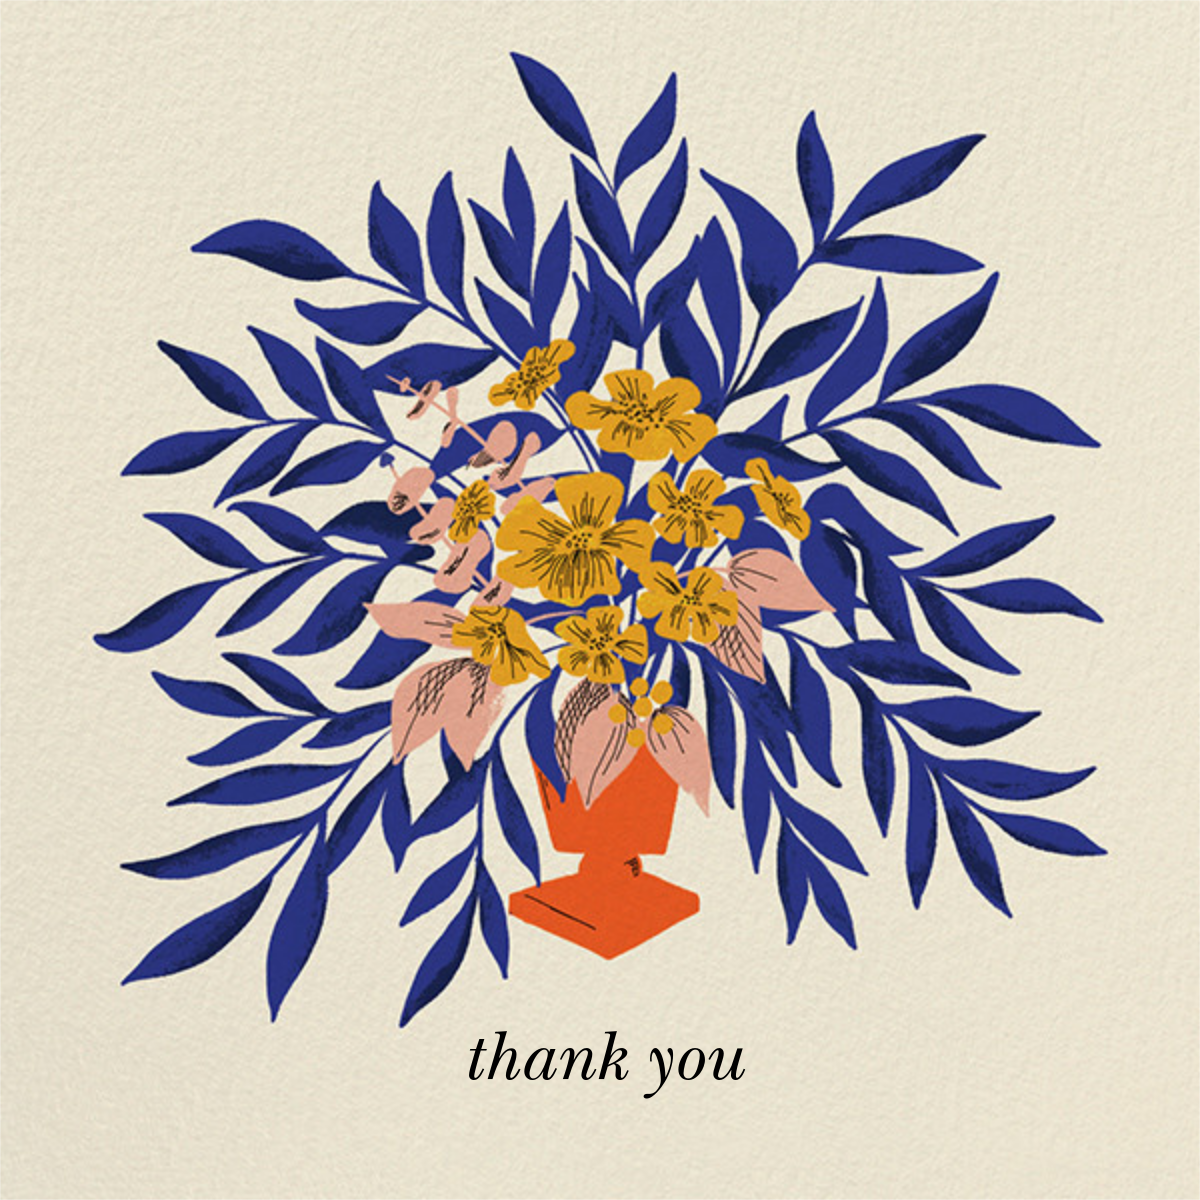 Bold Bouquet (Dylan Mierzwinski) - Red Cap Cards - Thank you